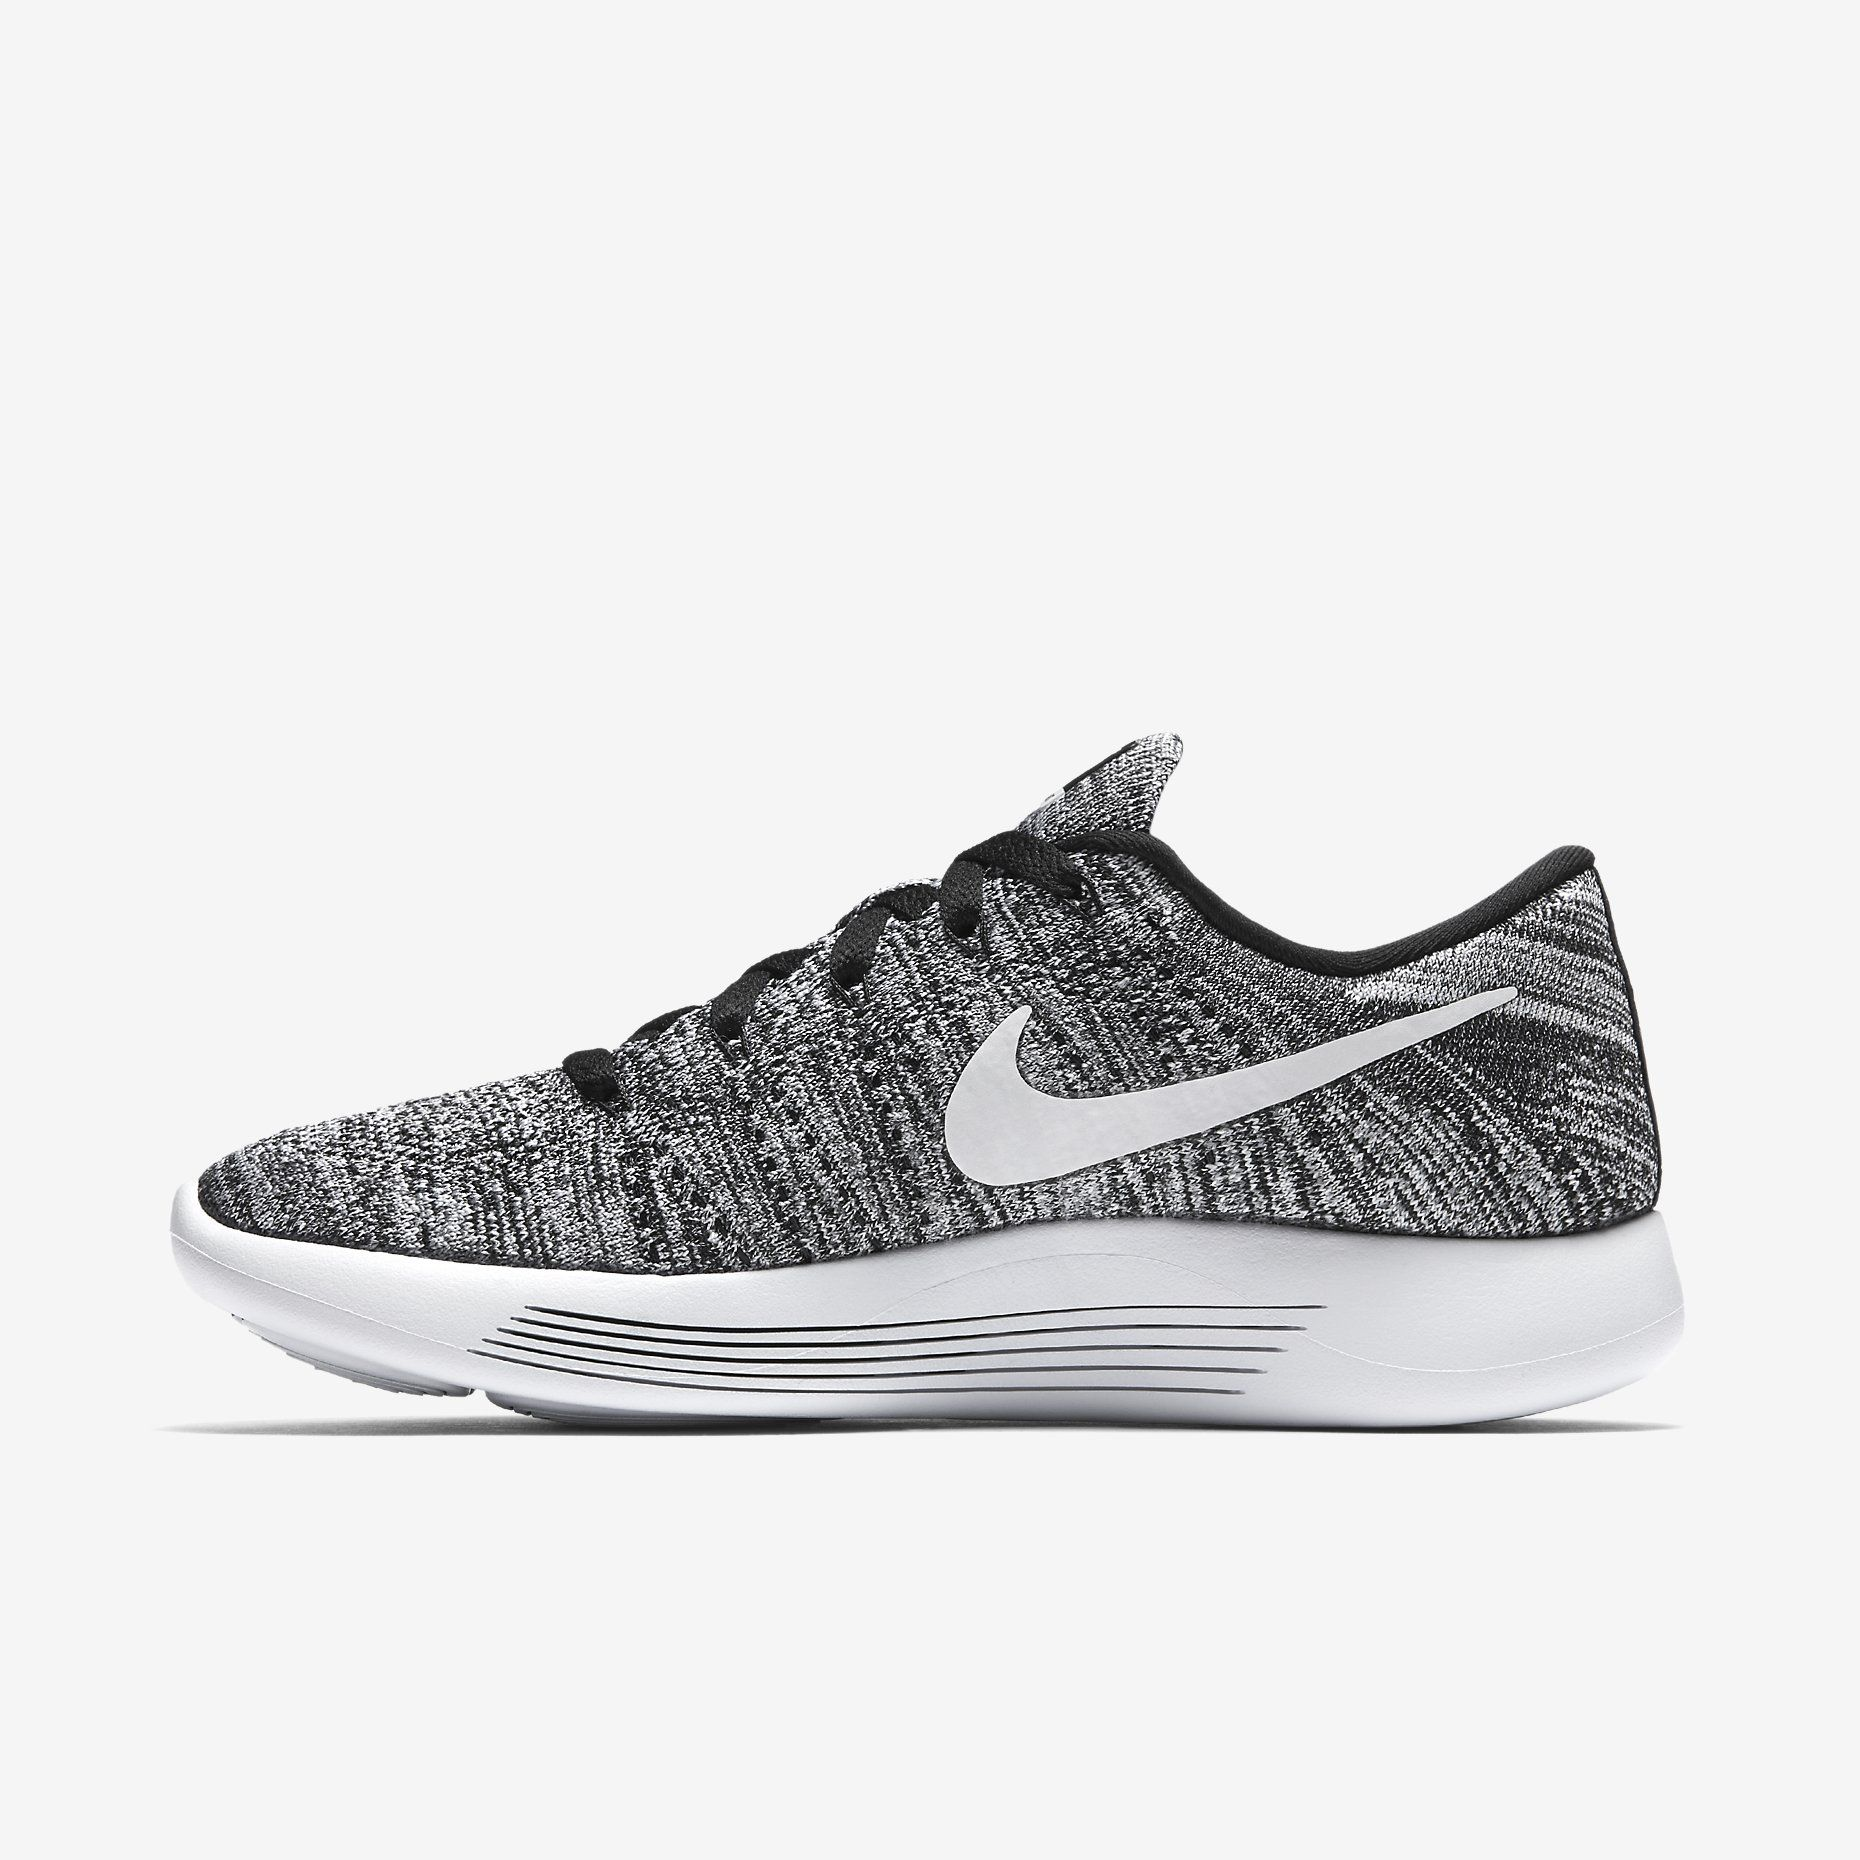 nike womens free flyknit+ shoe - black/white/grey tile